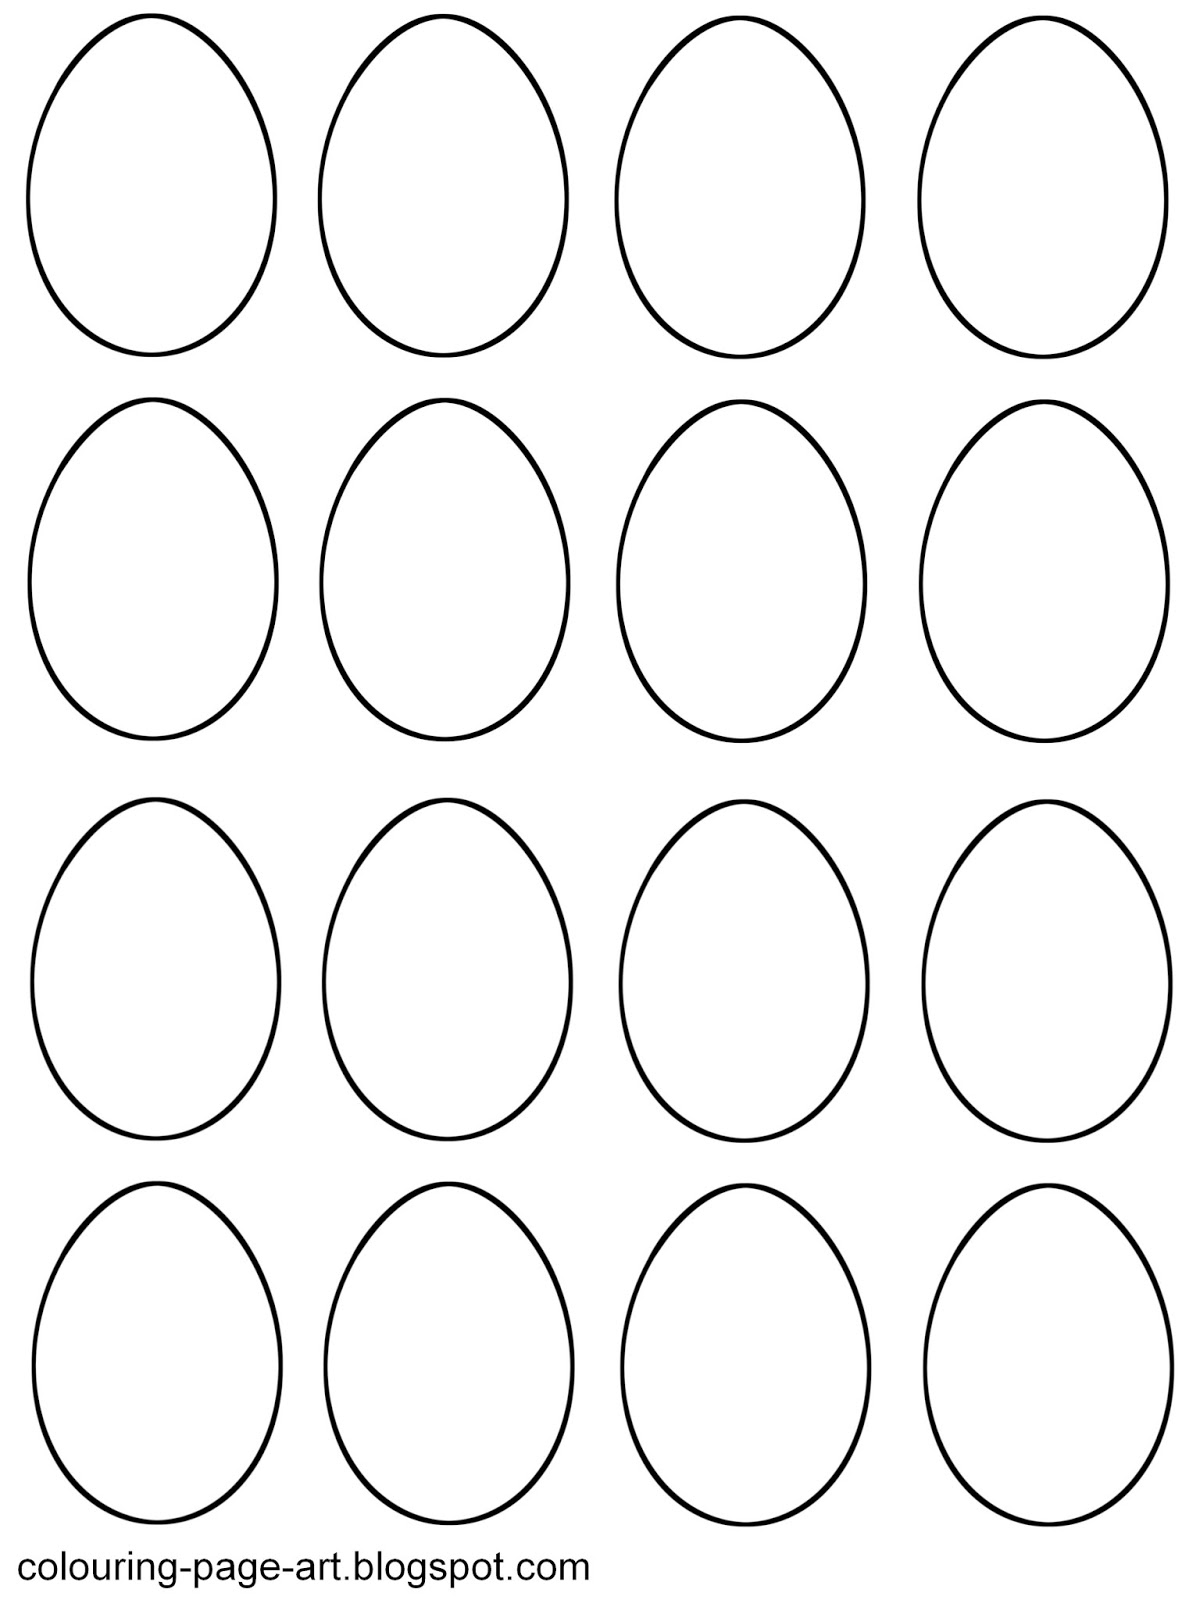 blank easter egg templates - Easter Egg Printables